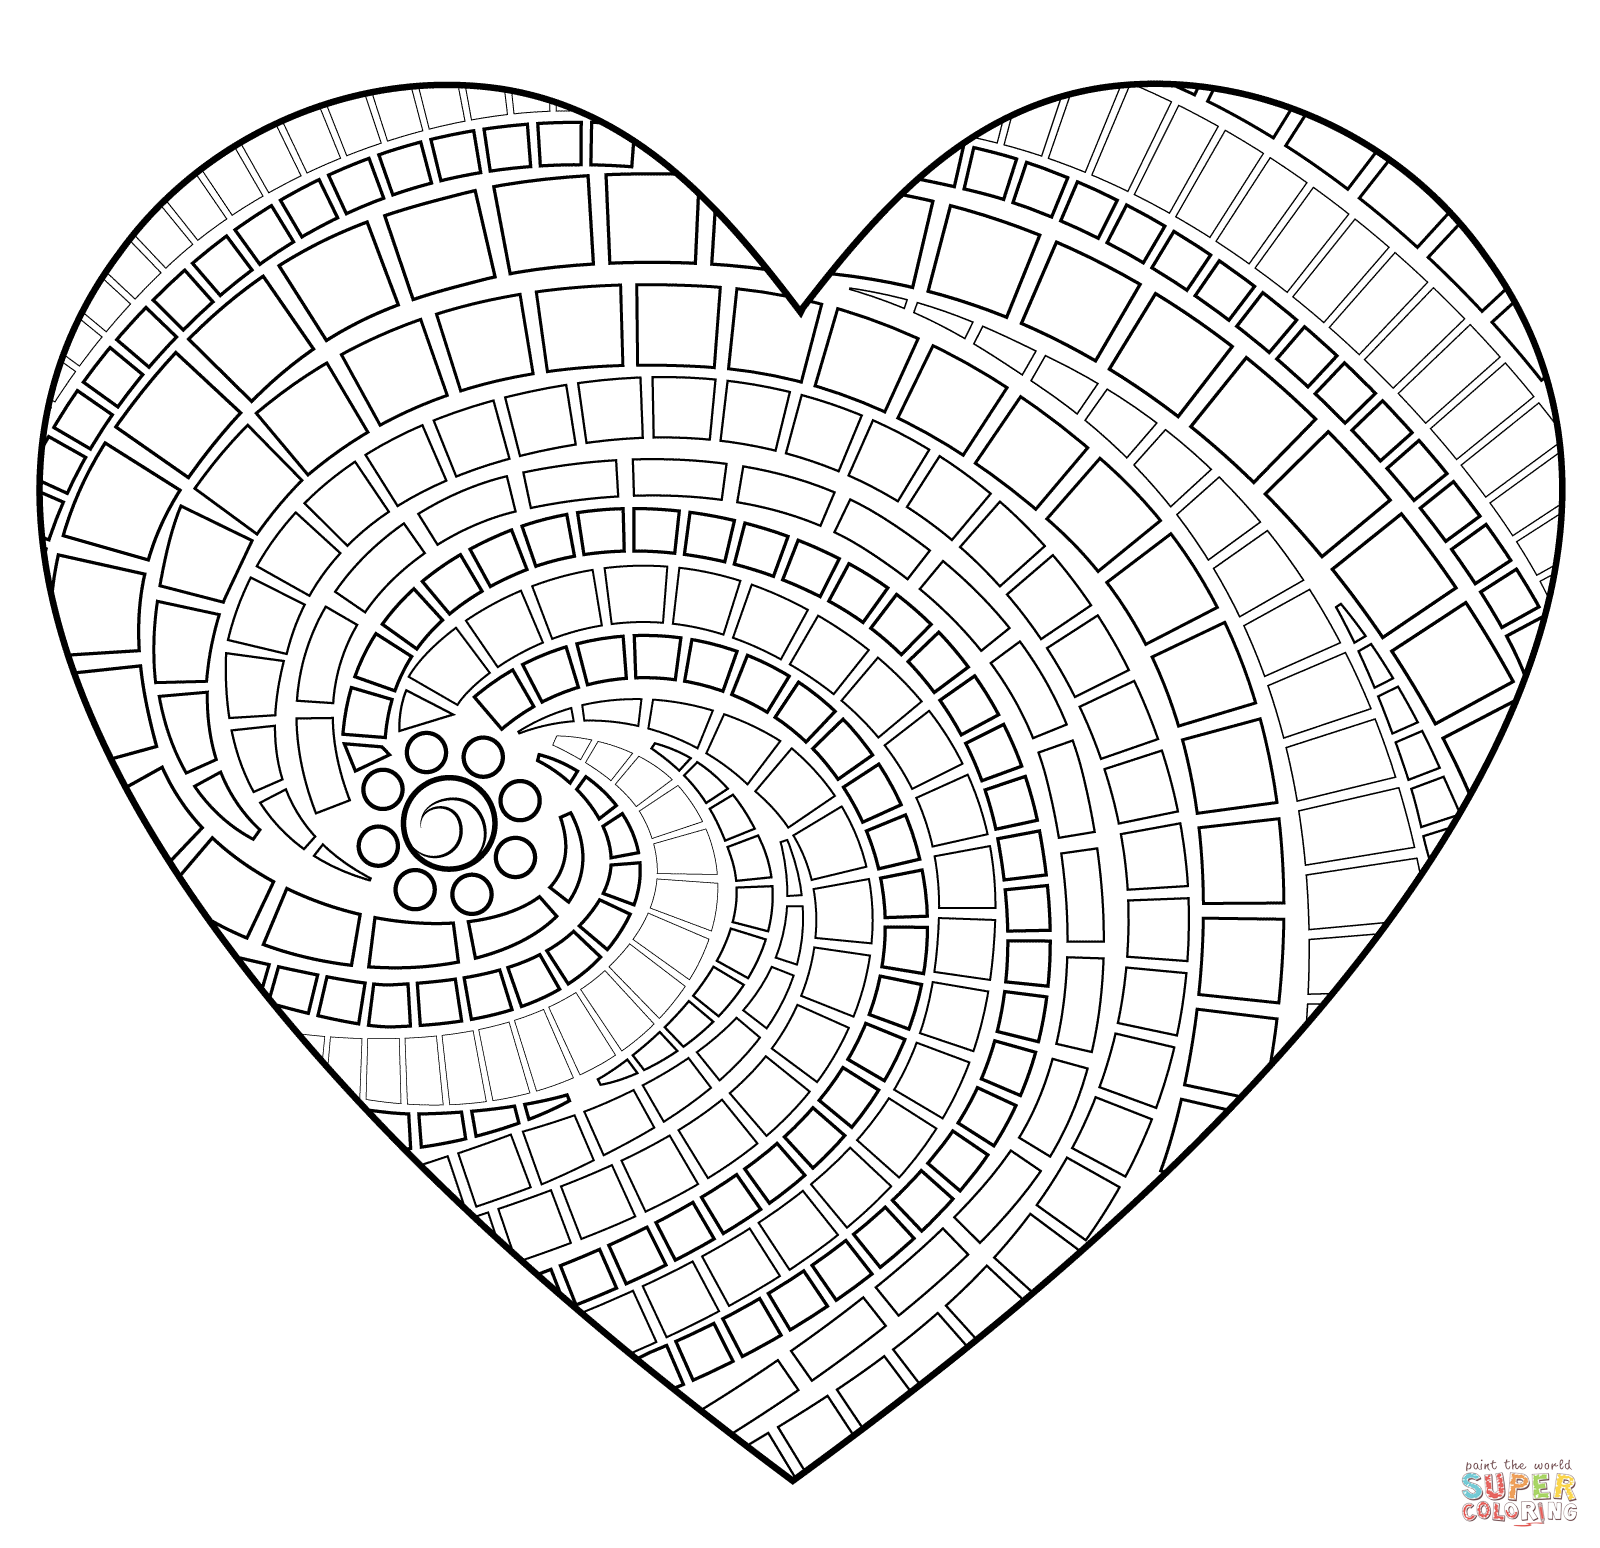 free mosaic patterns to print click the heart mosaic coloring pages to view printable version - Heart Coloring Pages Print